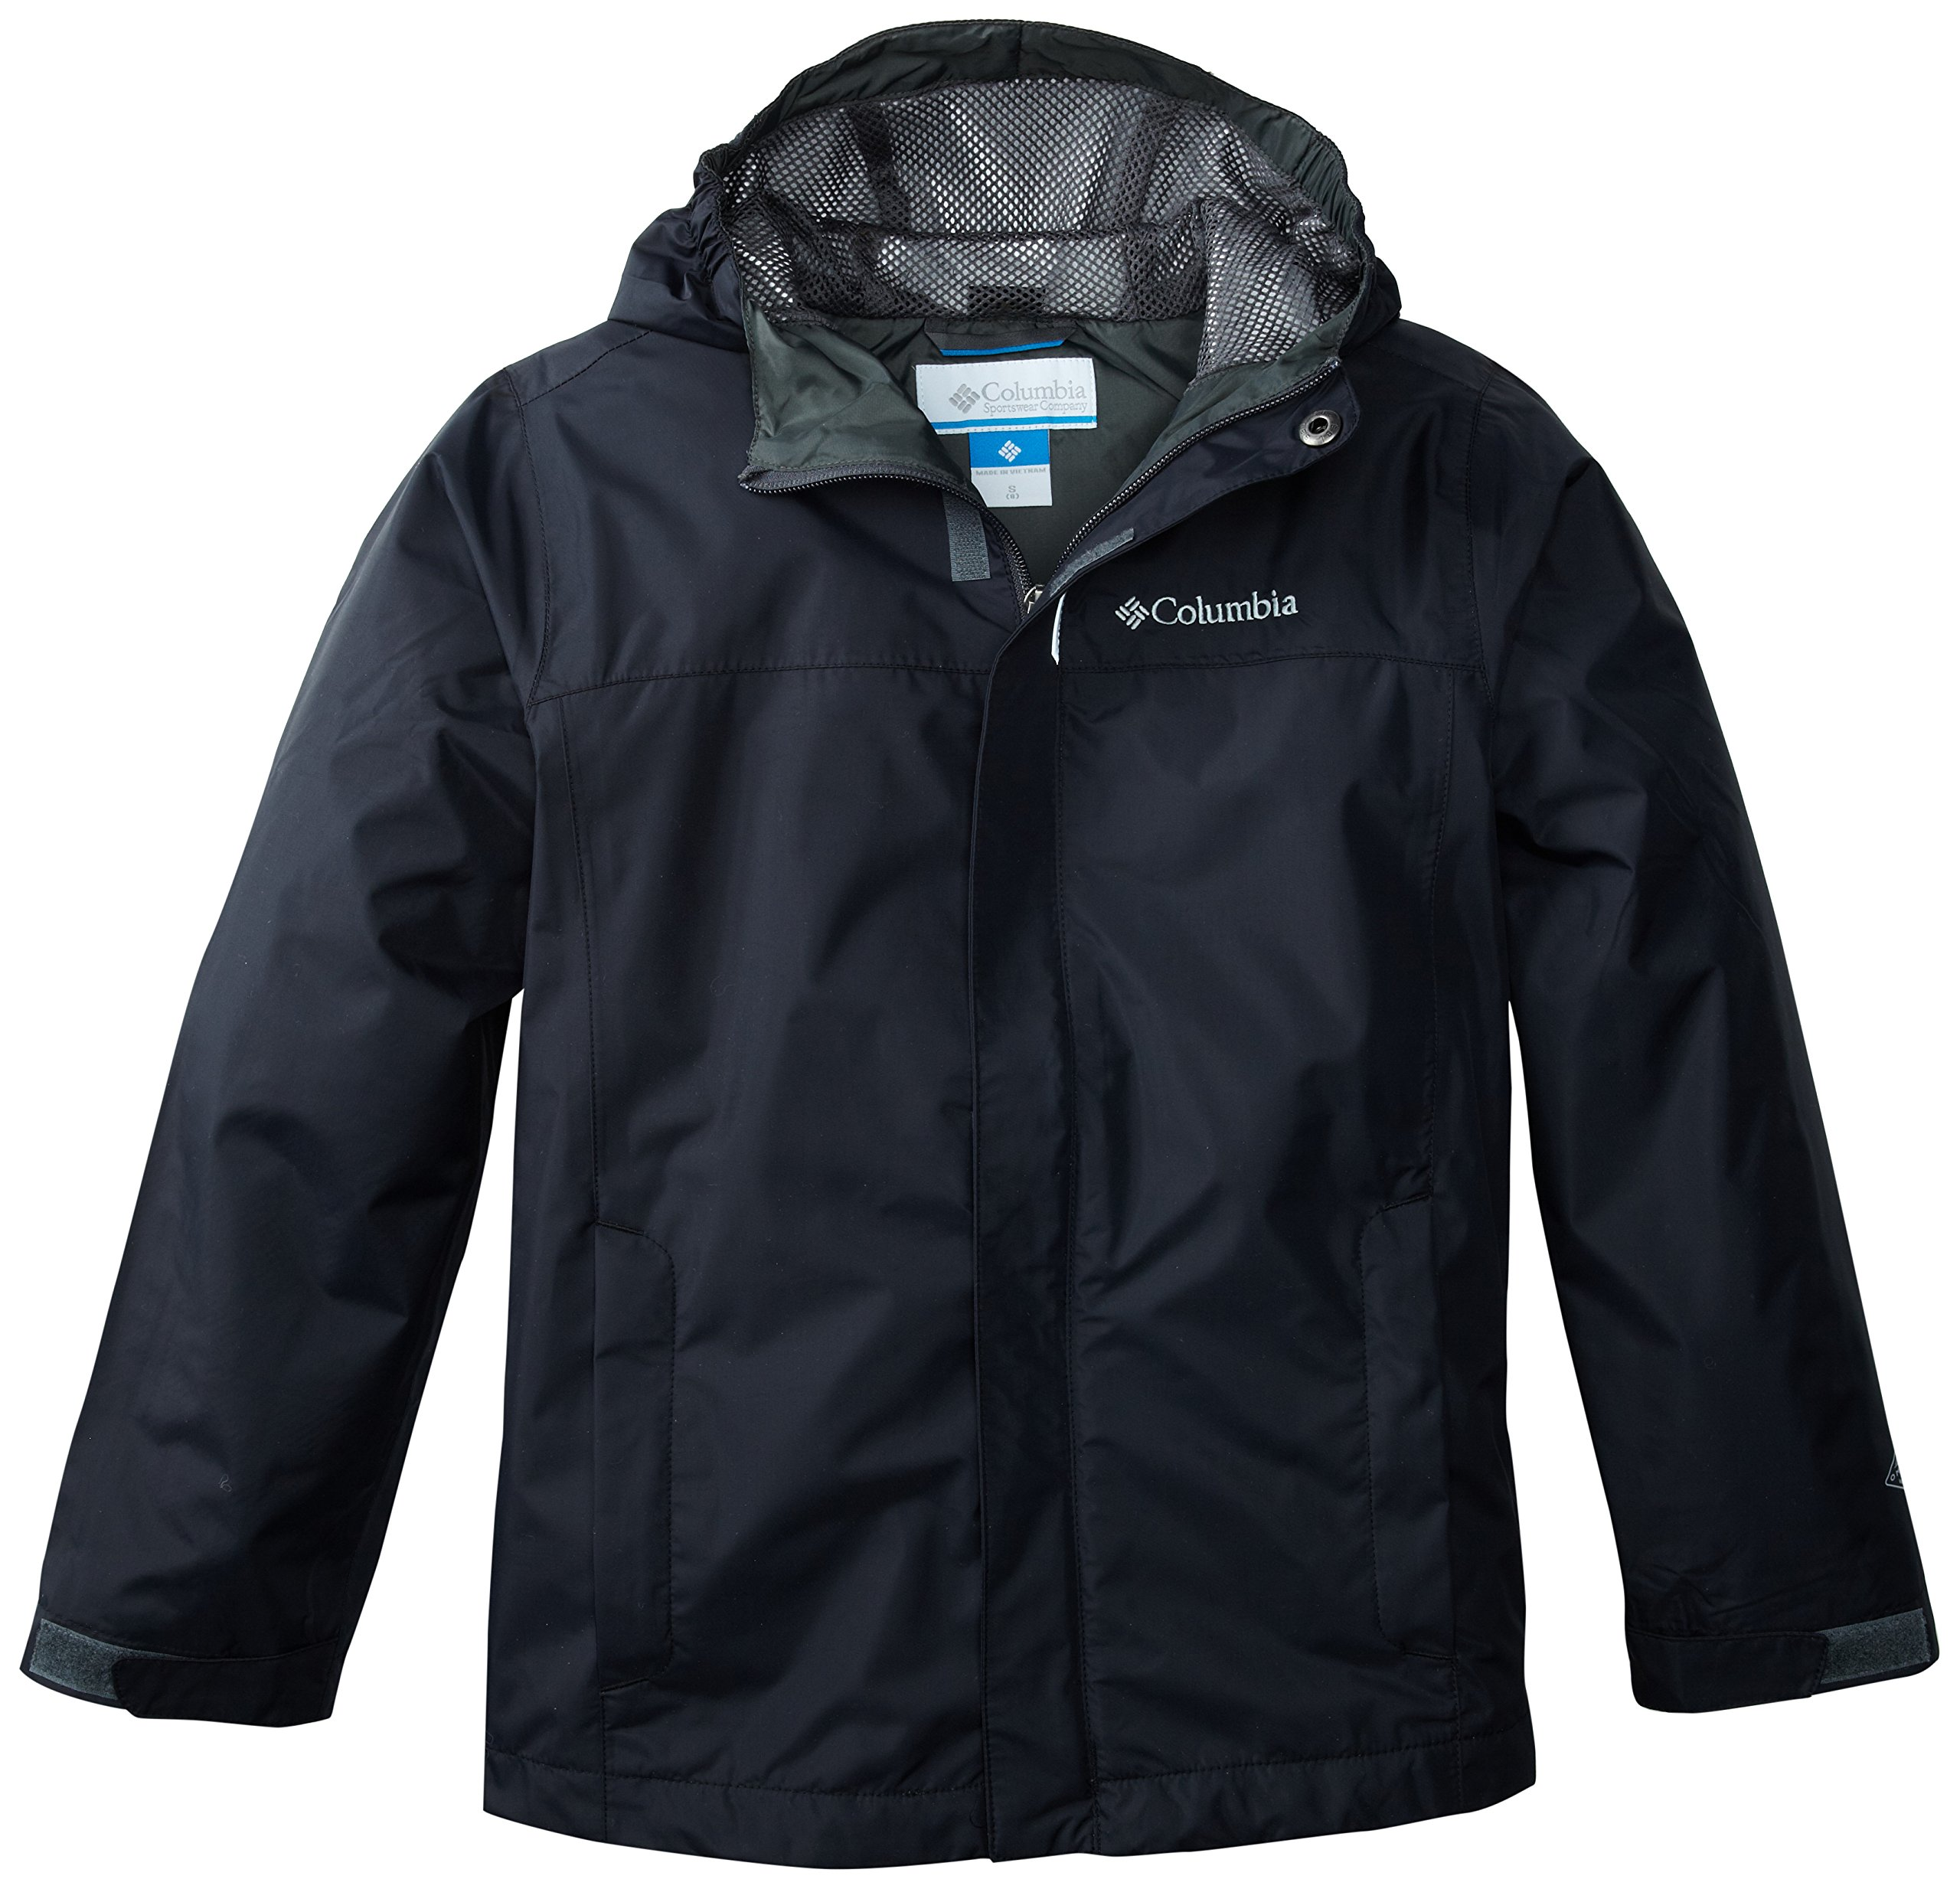 Columbia Big Boys' Watertight Jacket, Black, Large